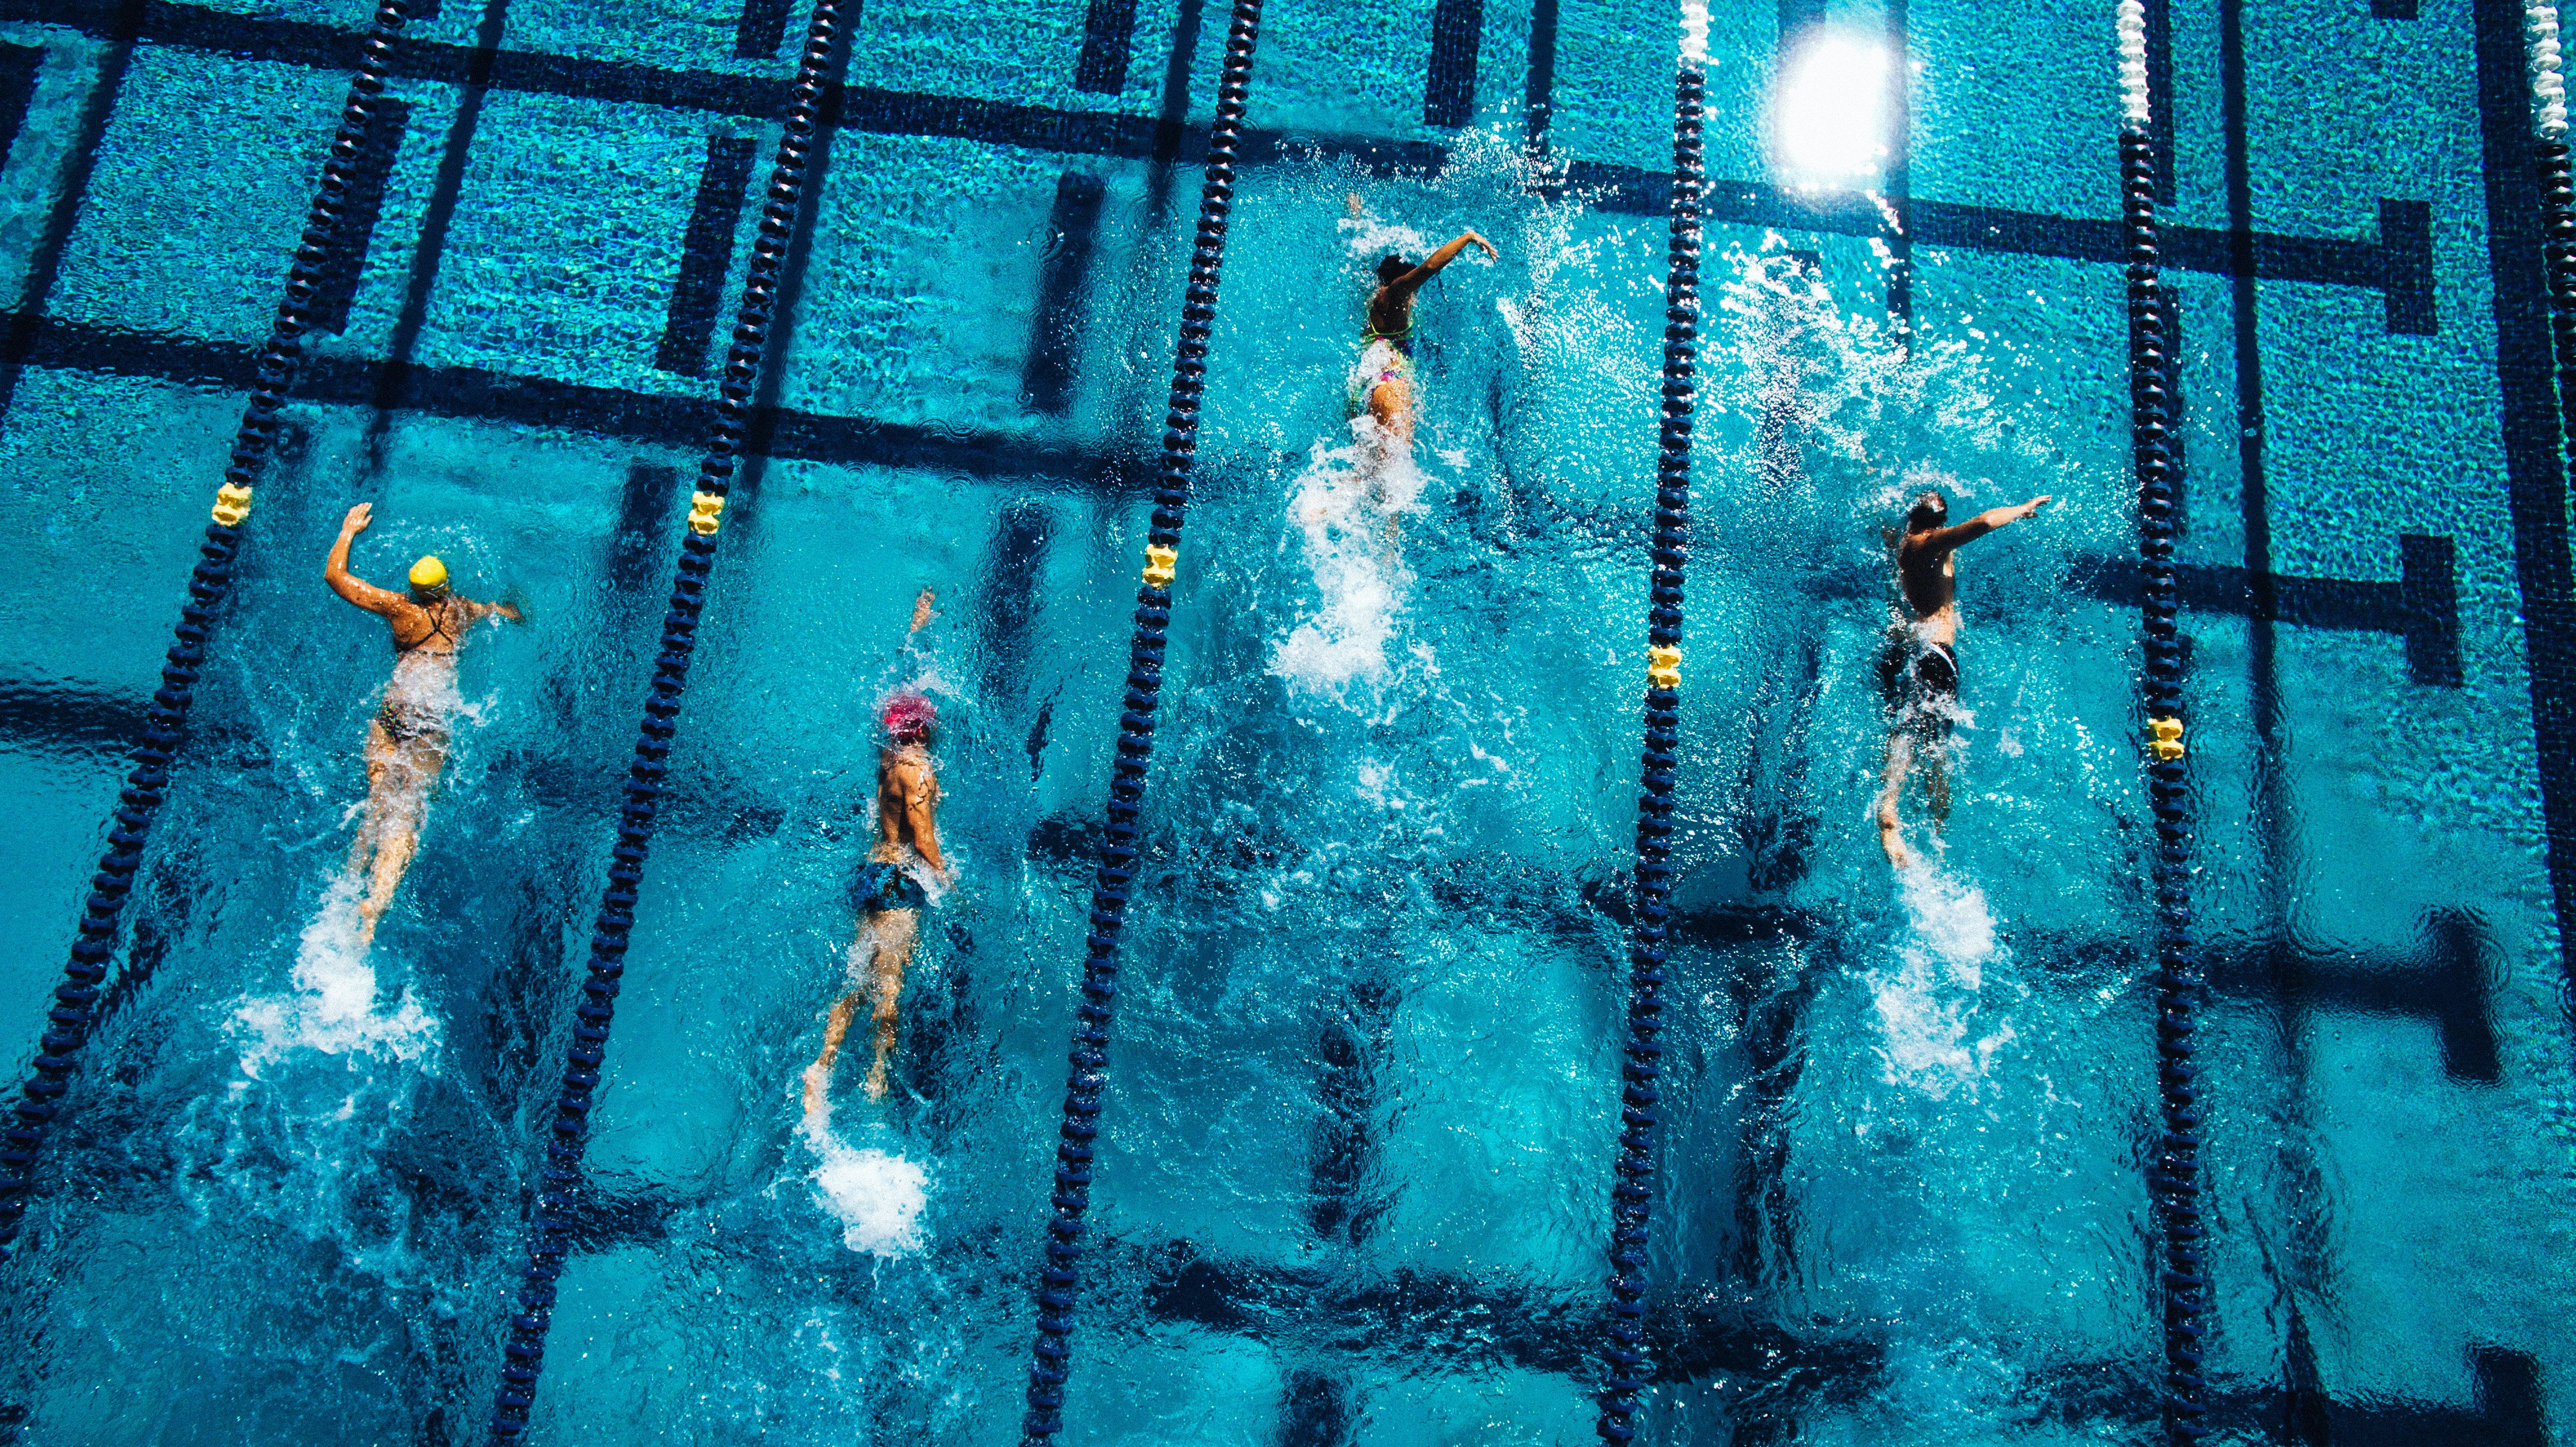 Stock photo of swimmers in